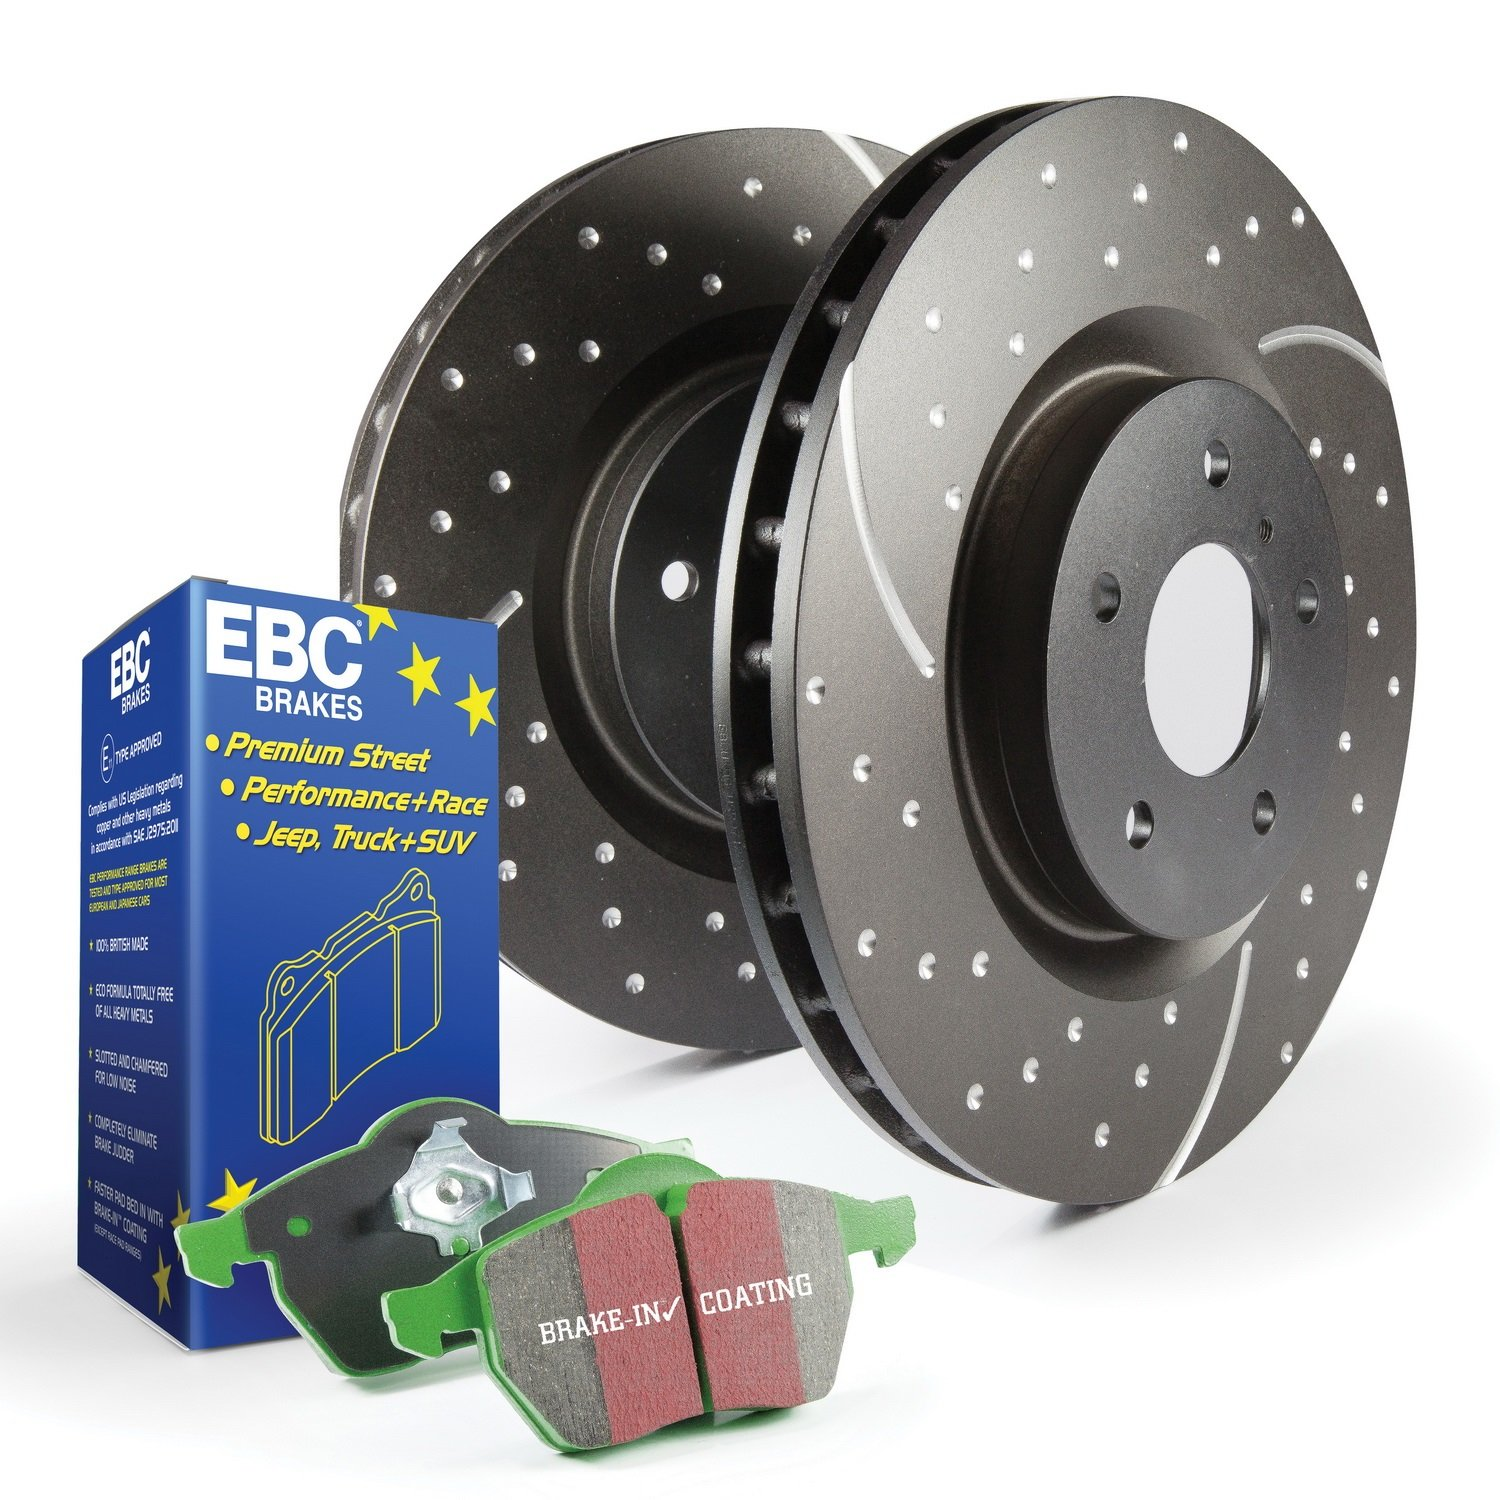 EBC S3KF1128 Stage-3 Truck and SUV Brake Kit by EBC (Image #1)